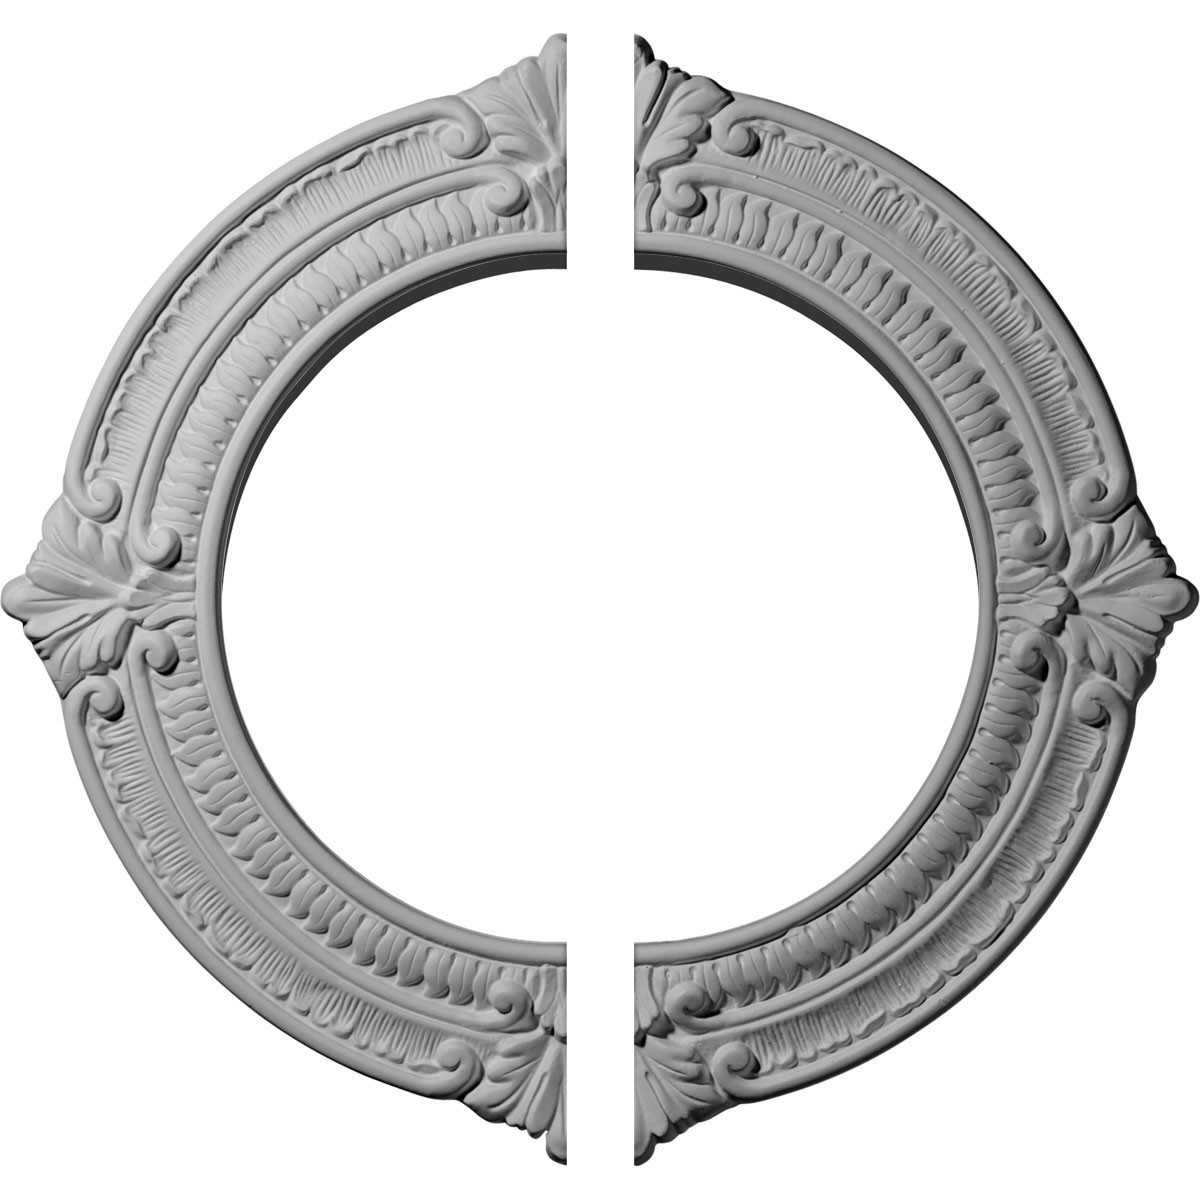 "EM-CM13BN2 - 13 1/8""OD x 8""ID x 5/8""P Benson Ceiling Medallion, Two Piece (Fits Canopies up to 8"")"